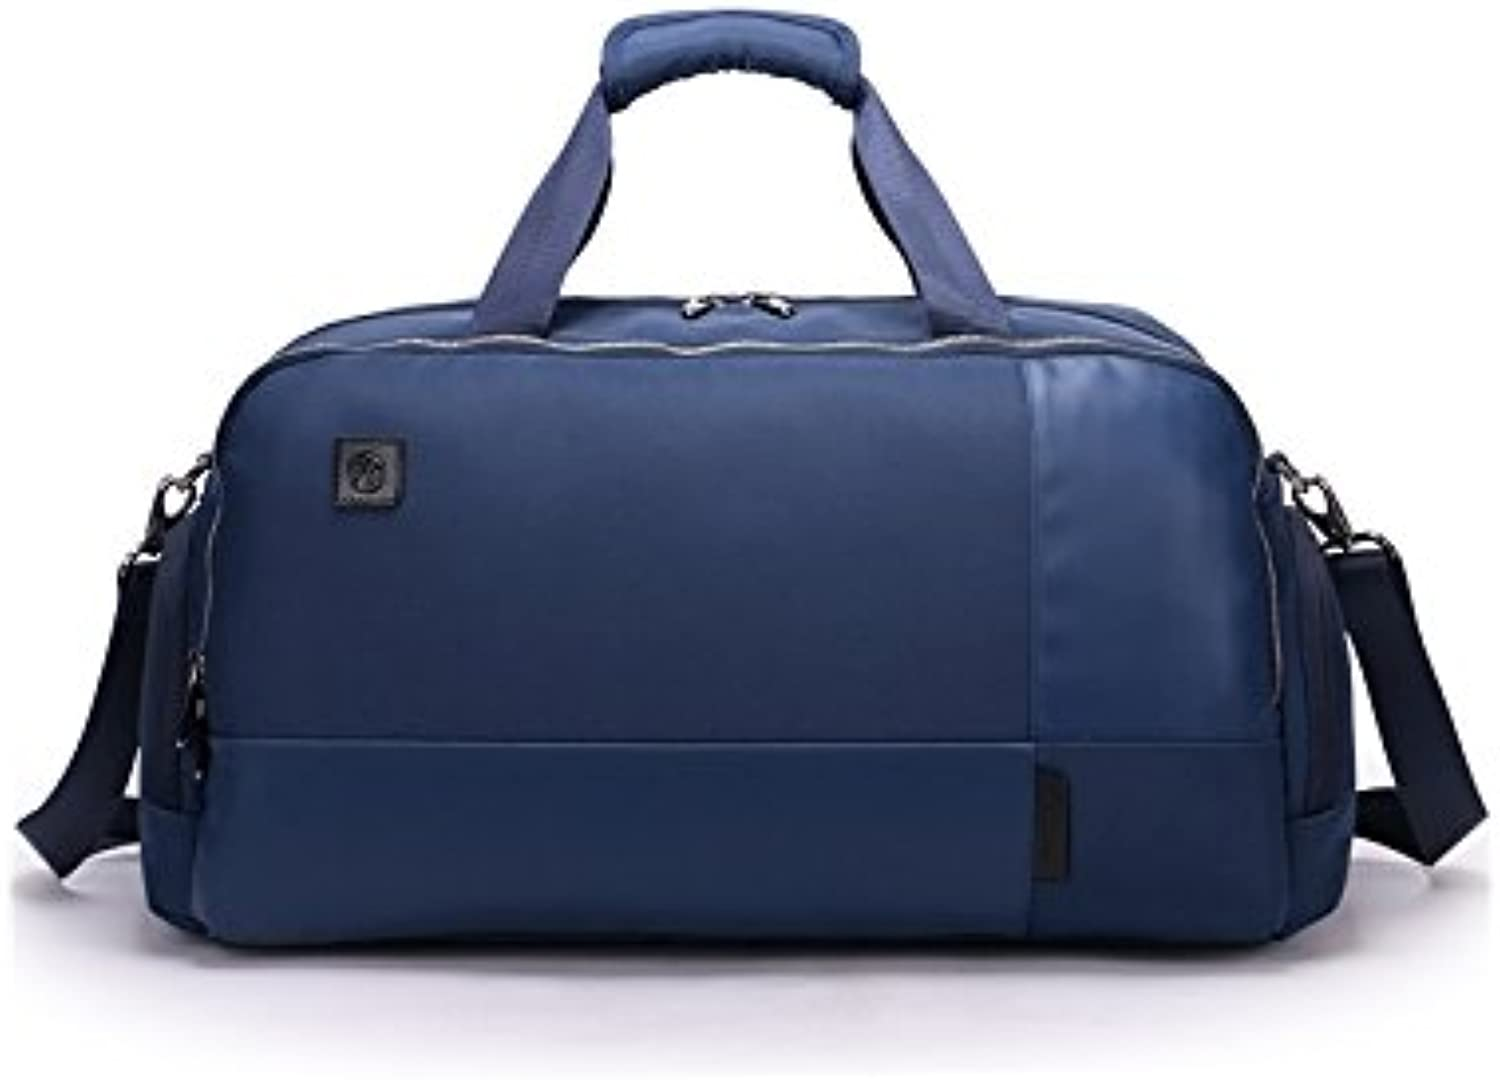 Hiking Outdoor Large Capacity Polyester Gym Bag Sports Holdall Travel Weekender Duffel Bag for Men and Women(blueee) for Outdoor Traveling